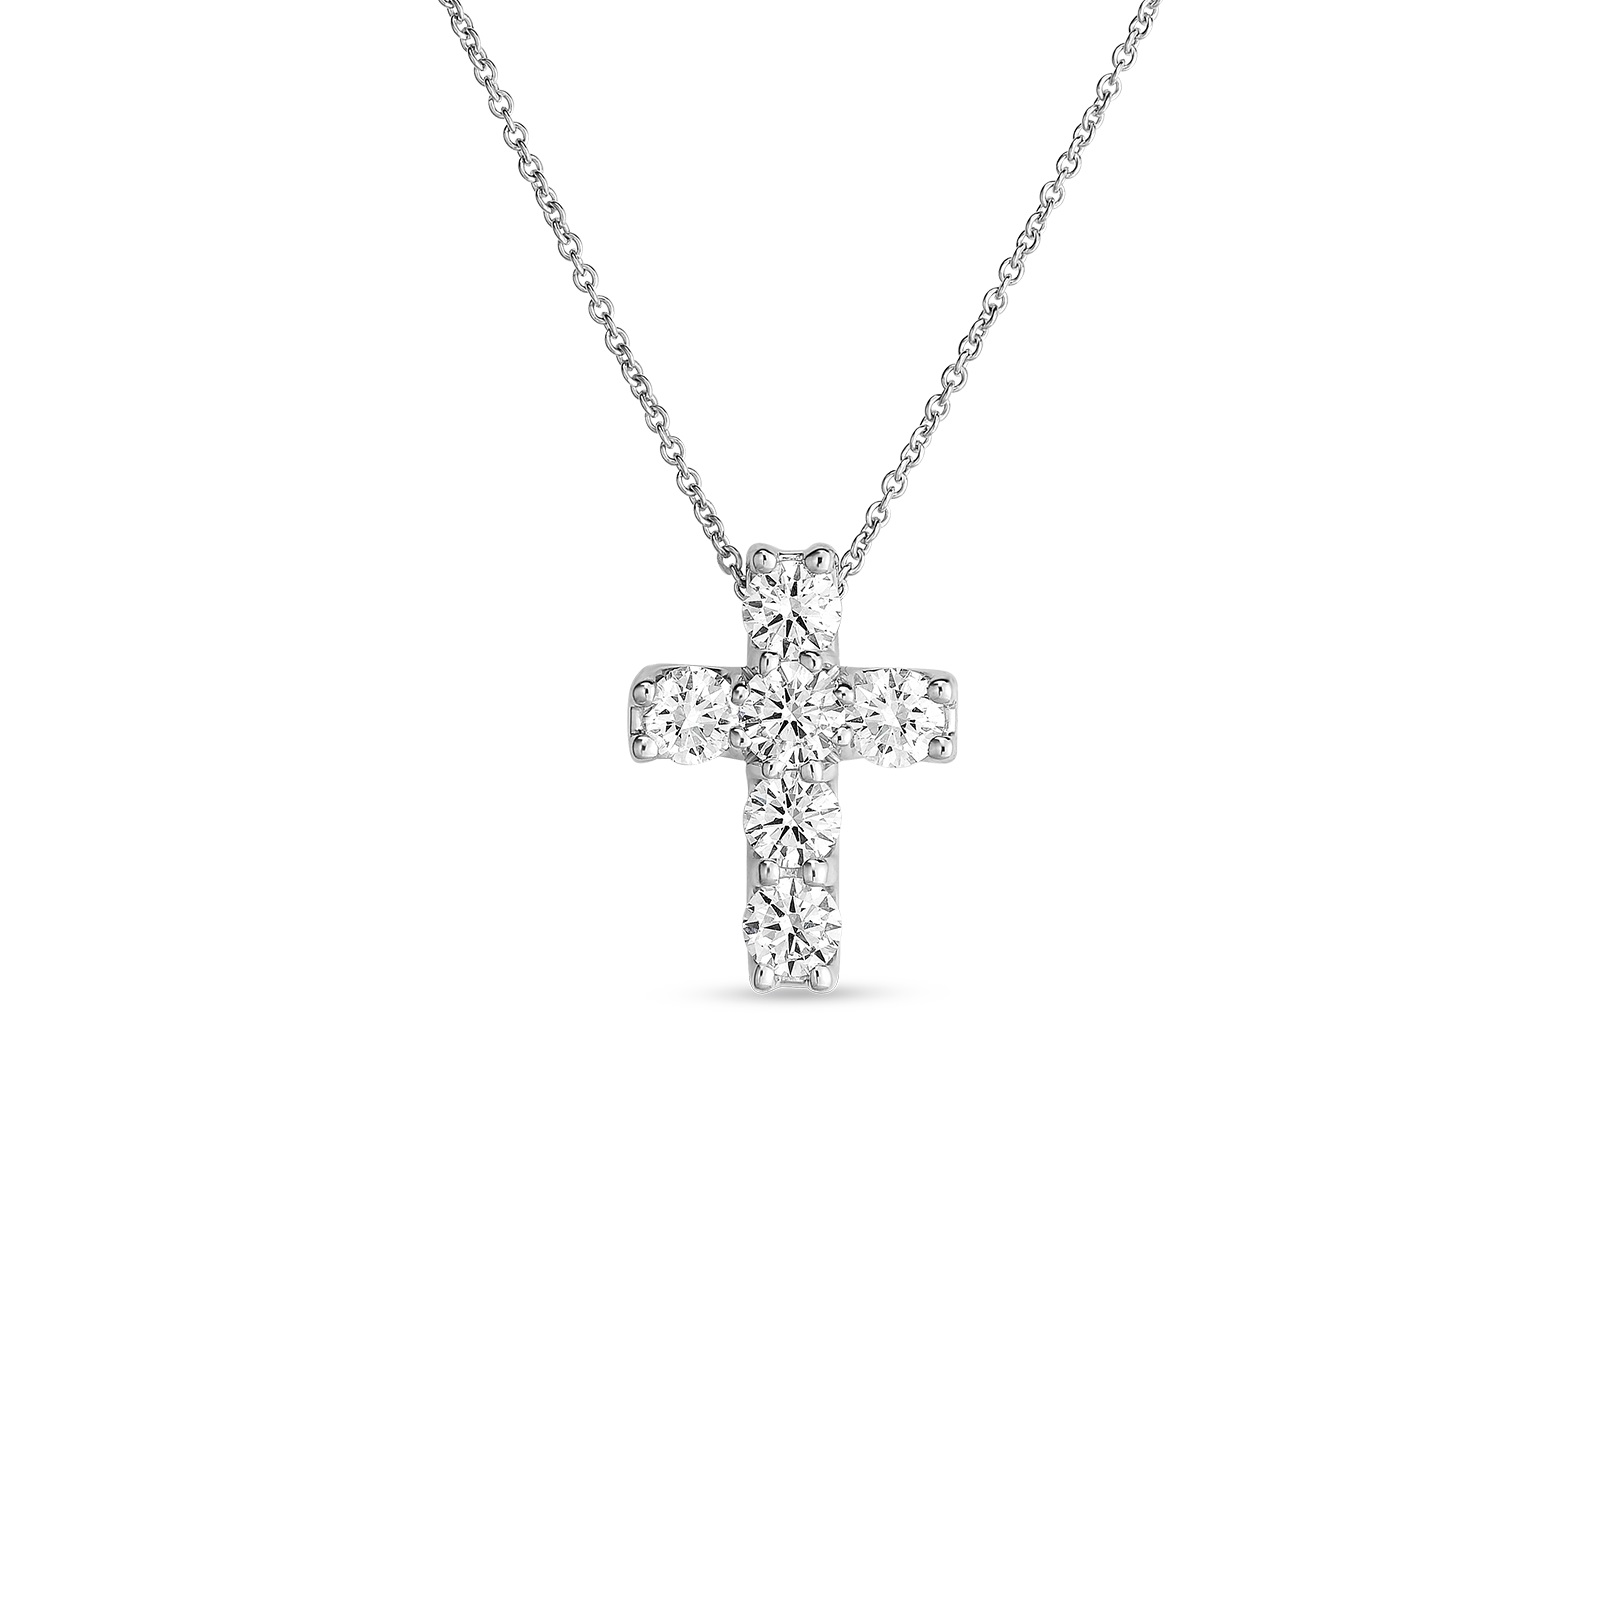 Roberto Coin 18K White Gold 1.06cts  Diamonds Gold Necklace with Stones 000814AWCHX0